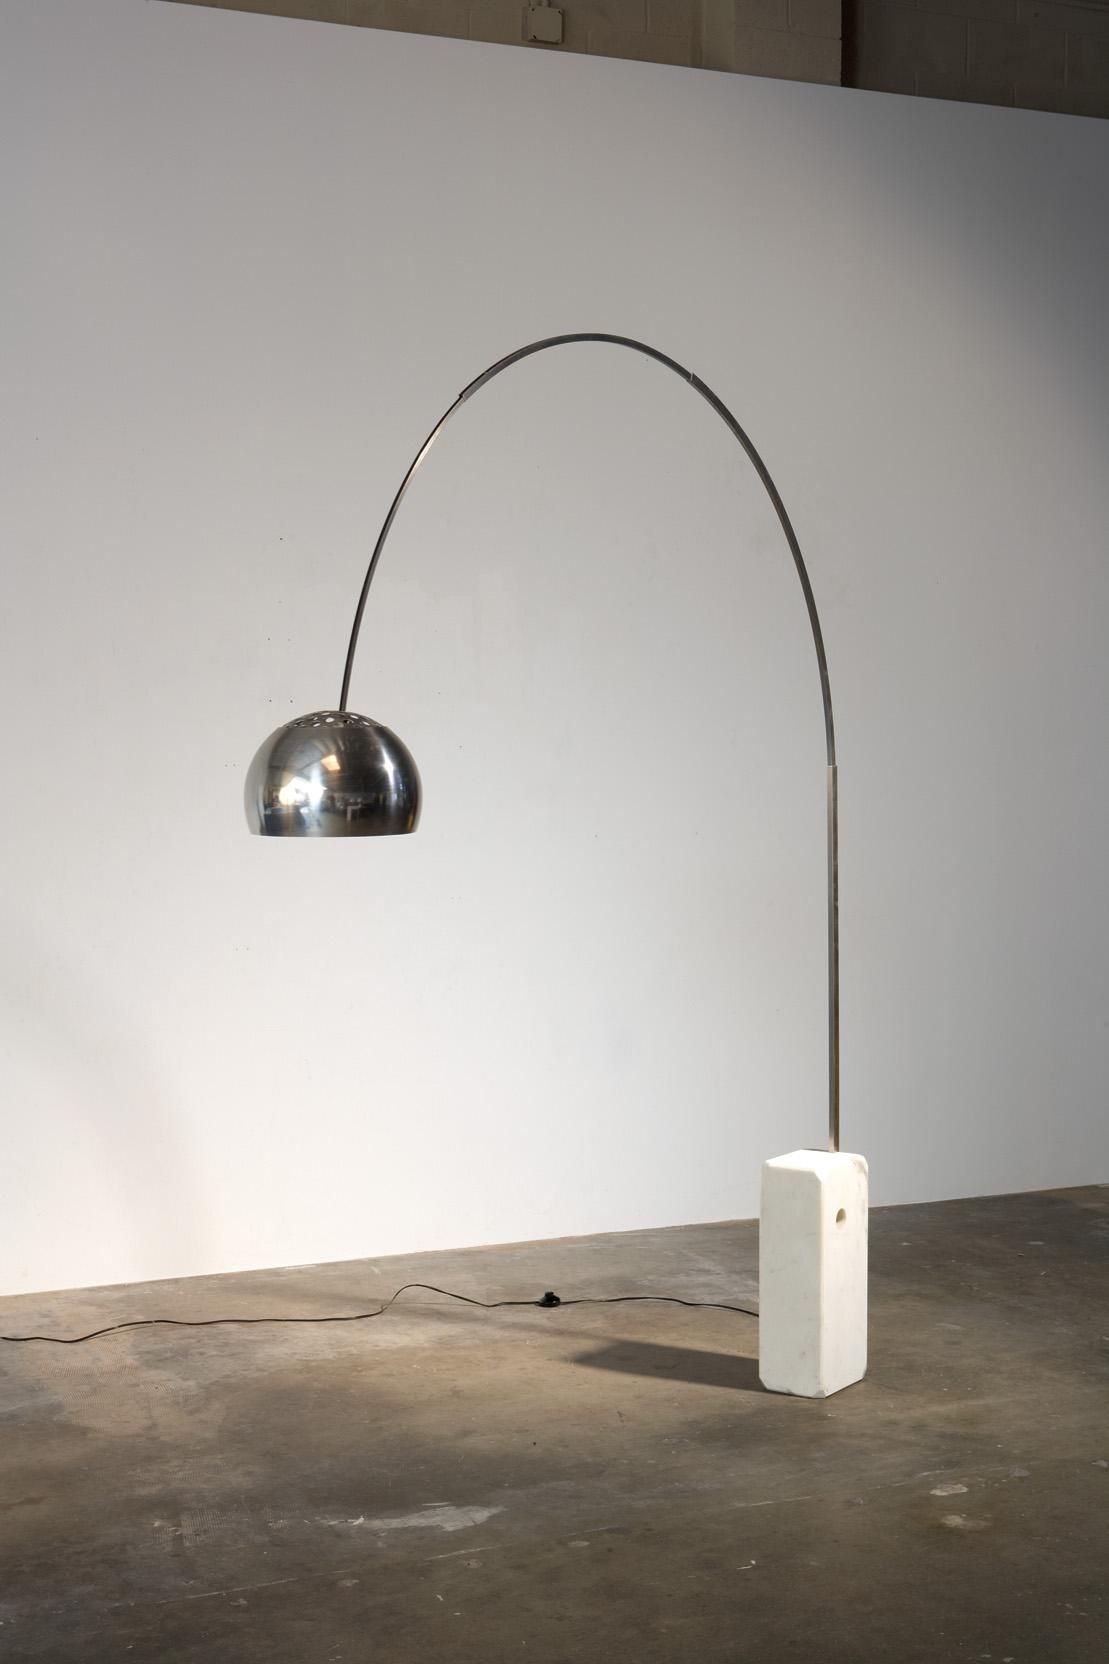 49f8574487d Arco Floor Lamp by Castiglioni for Flos. The Arco floor lamp is one of the  most iconic lights ever made. Achille and Pier Giacomo Castiglioni designed  the ...